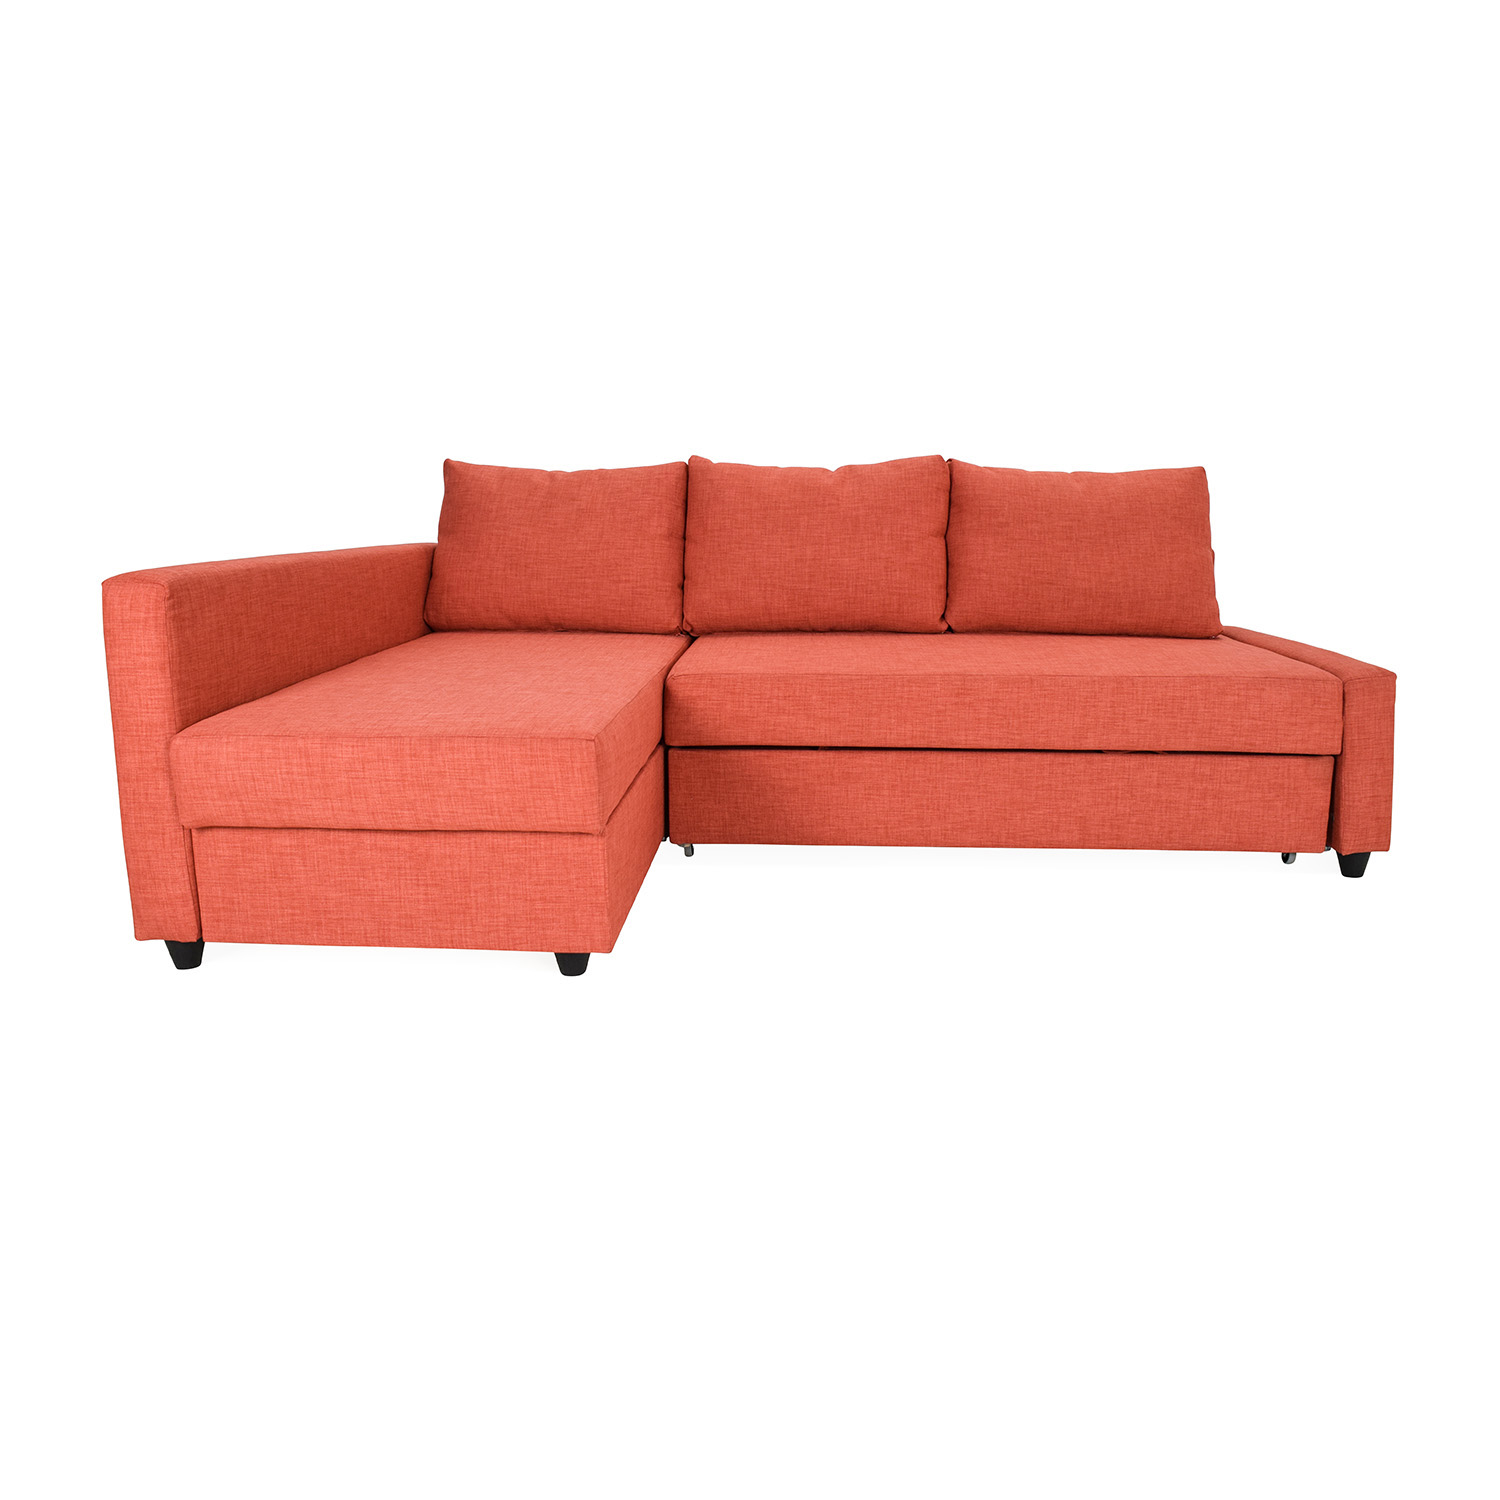 IKEA FRIHETEN Sofa bed with chaise Sectionals